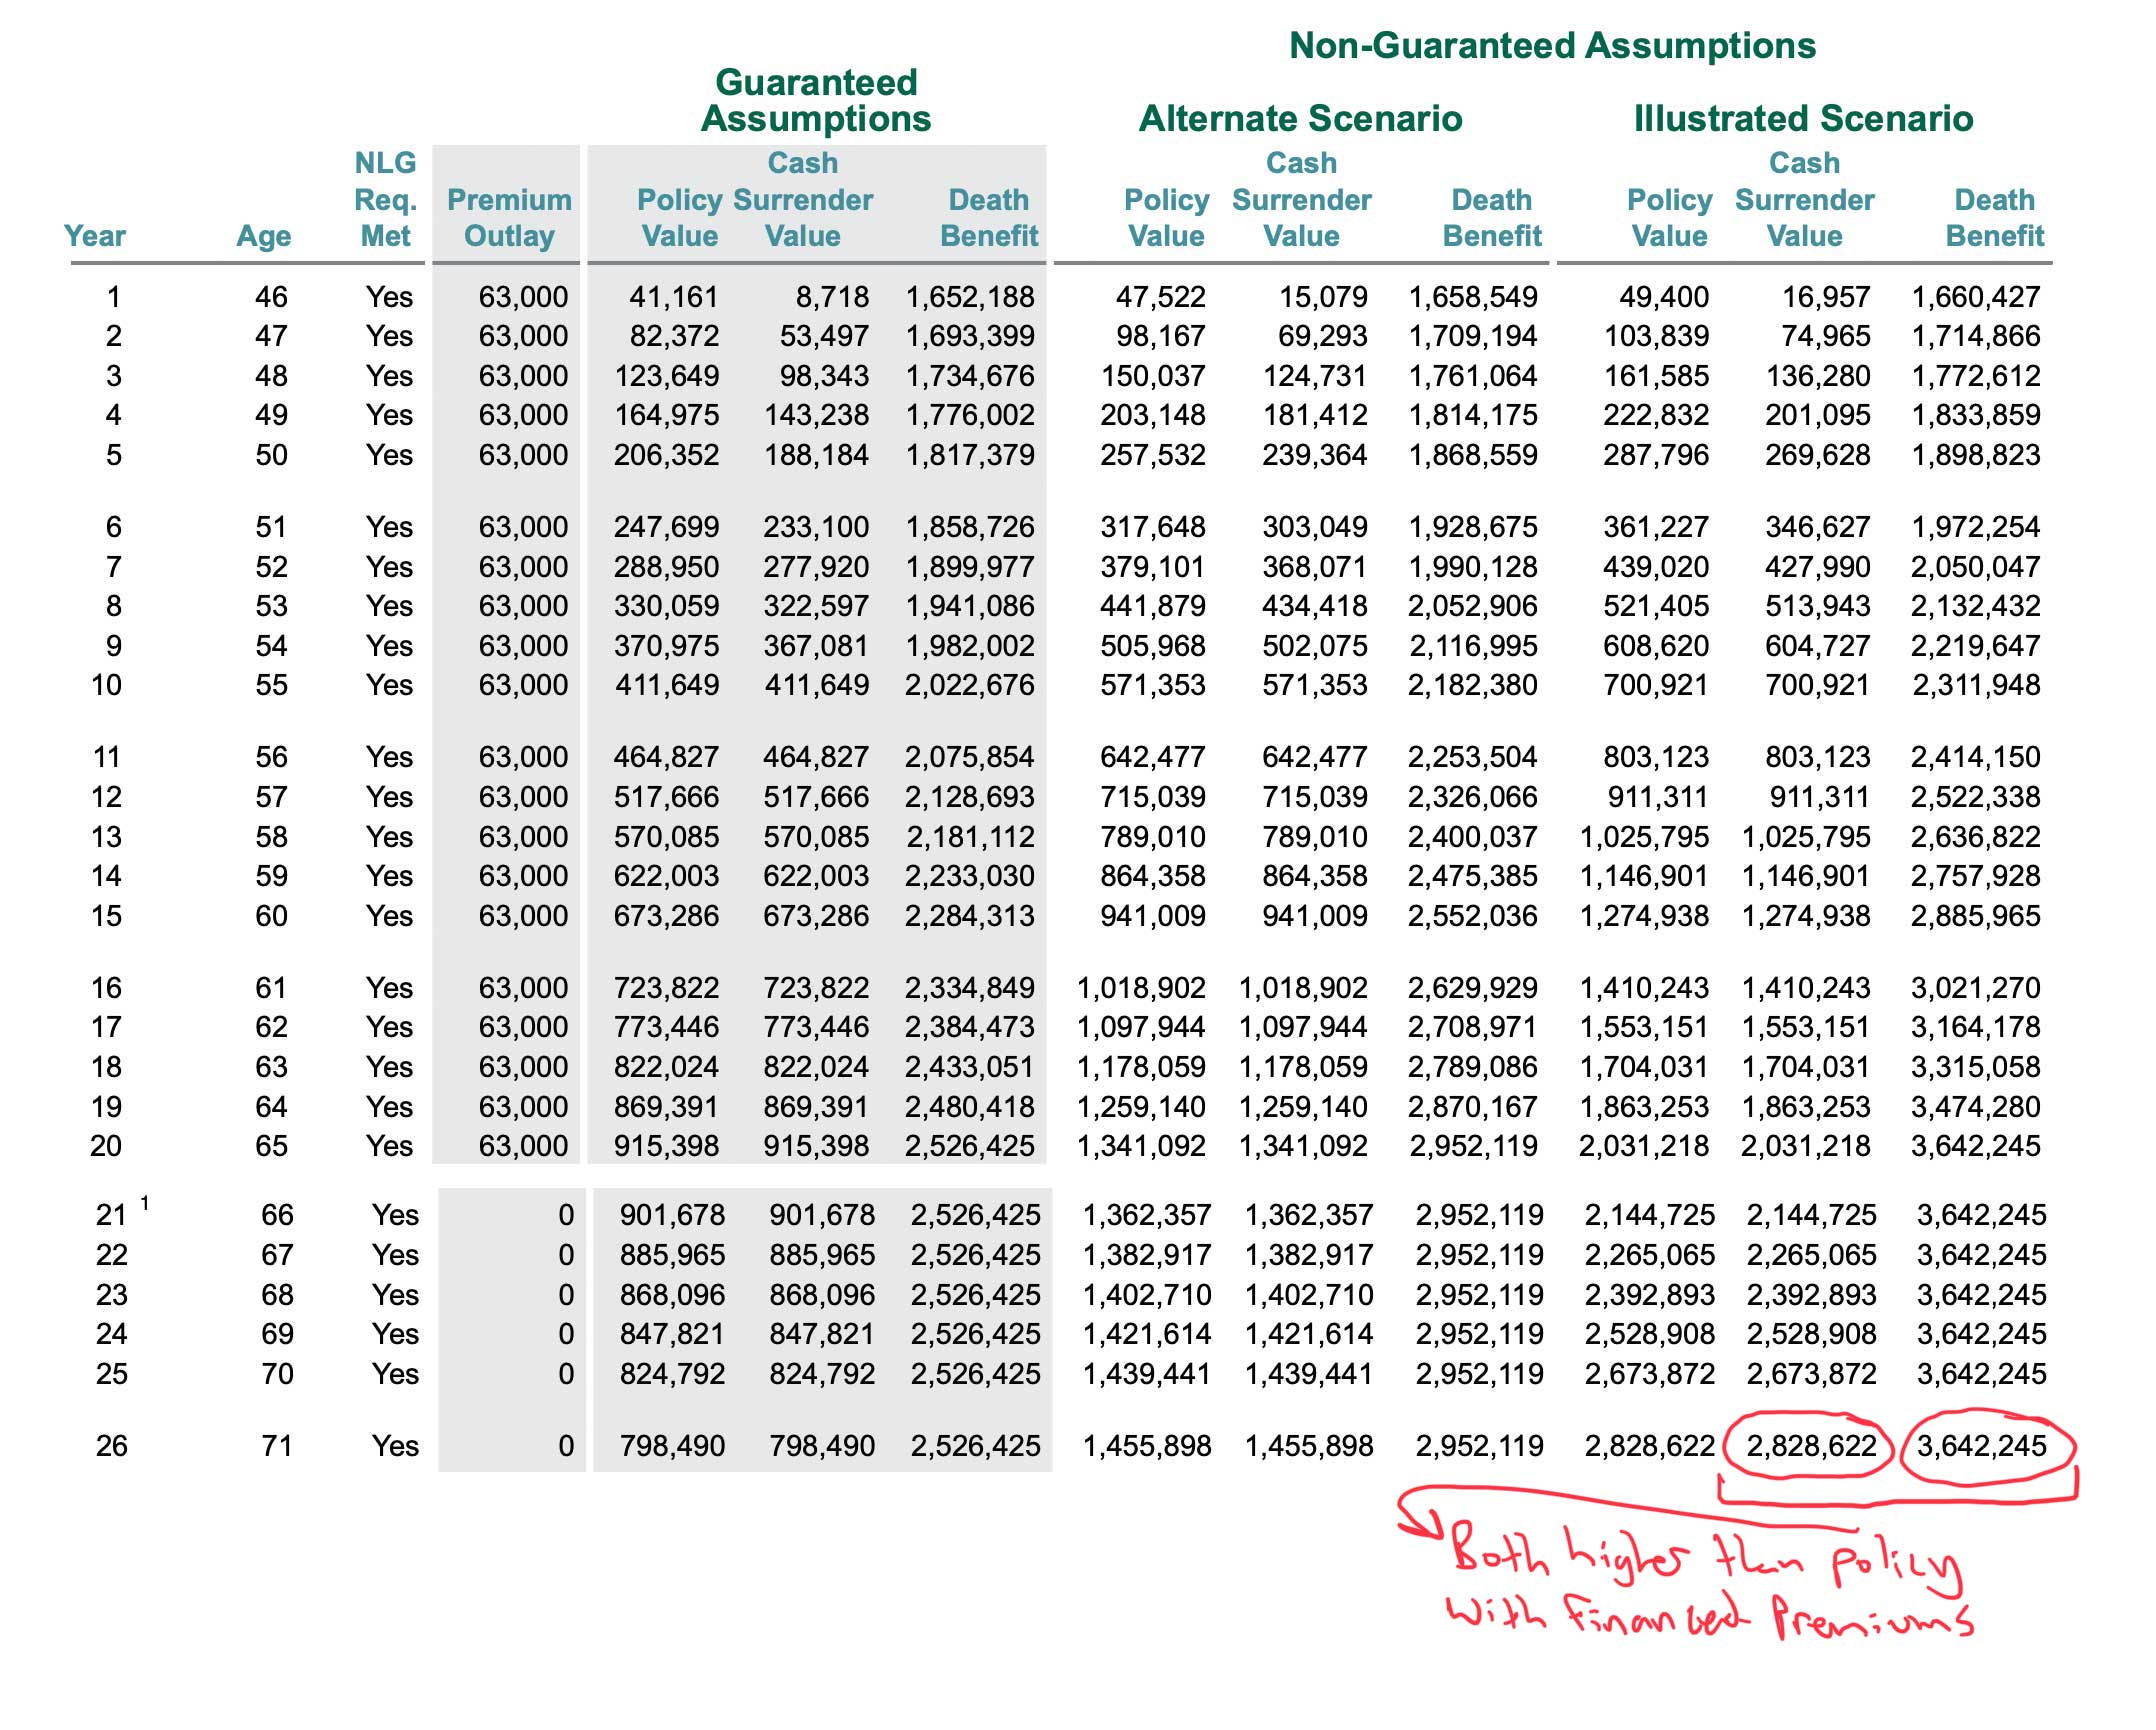 Non Financed Cash Value and Death Benefit Example